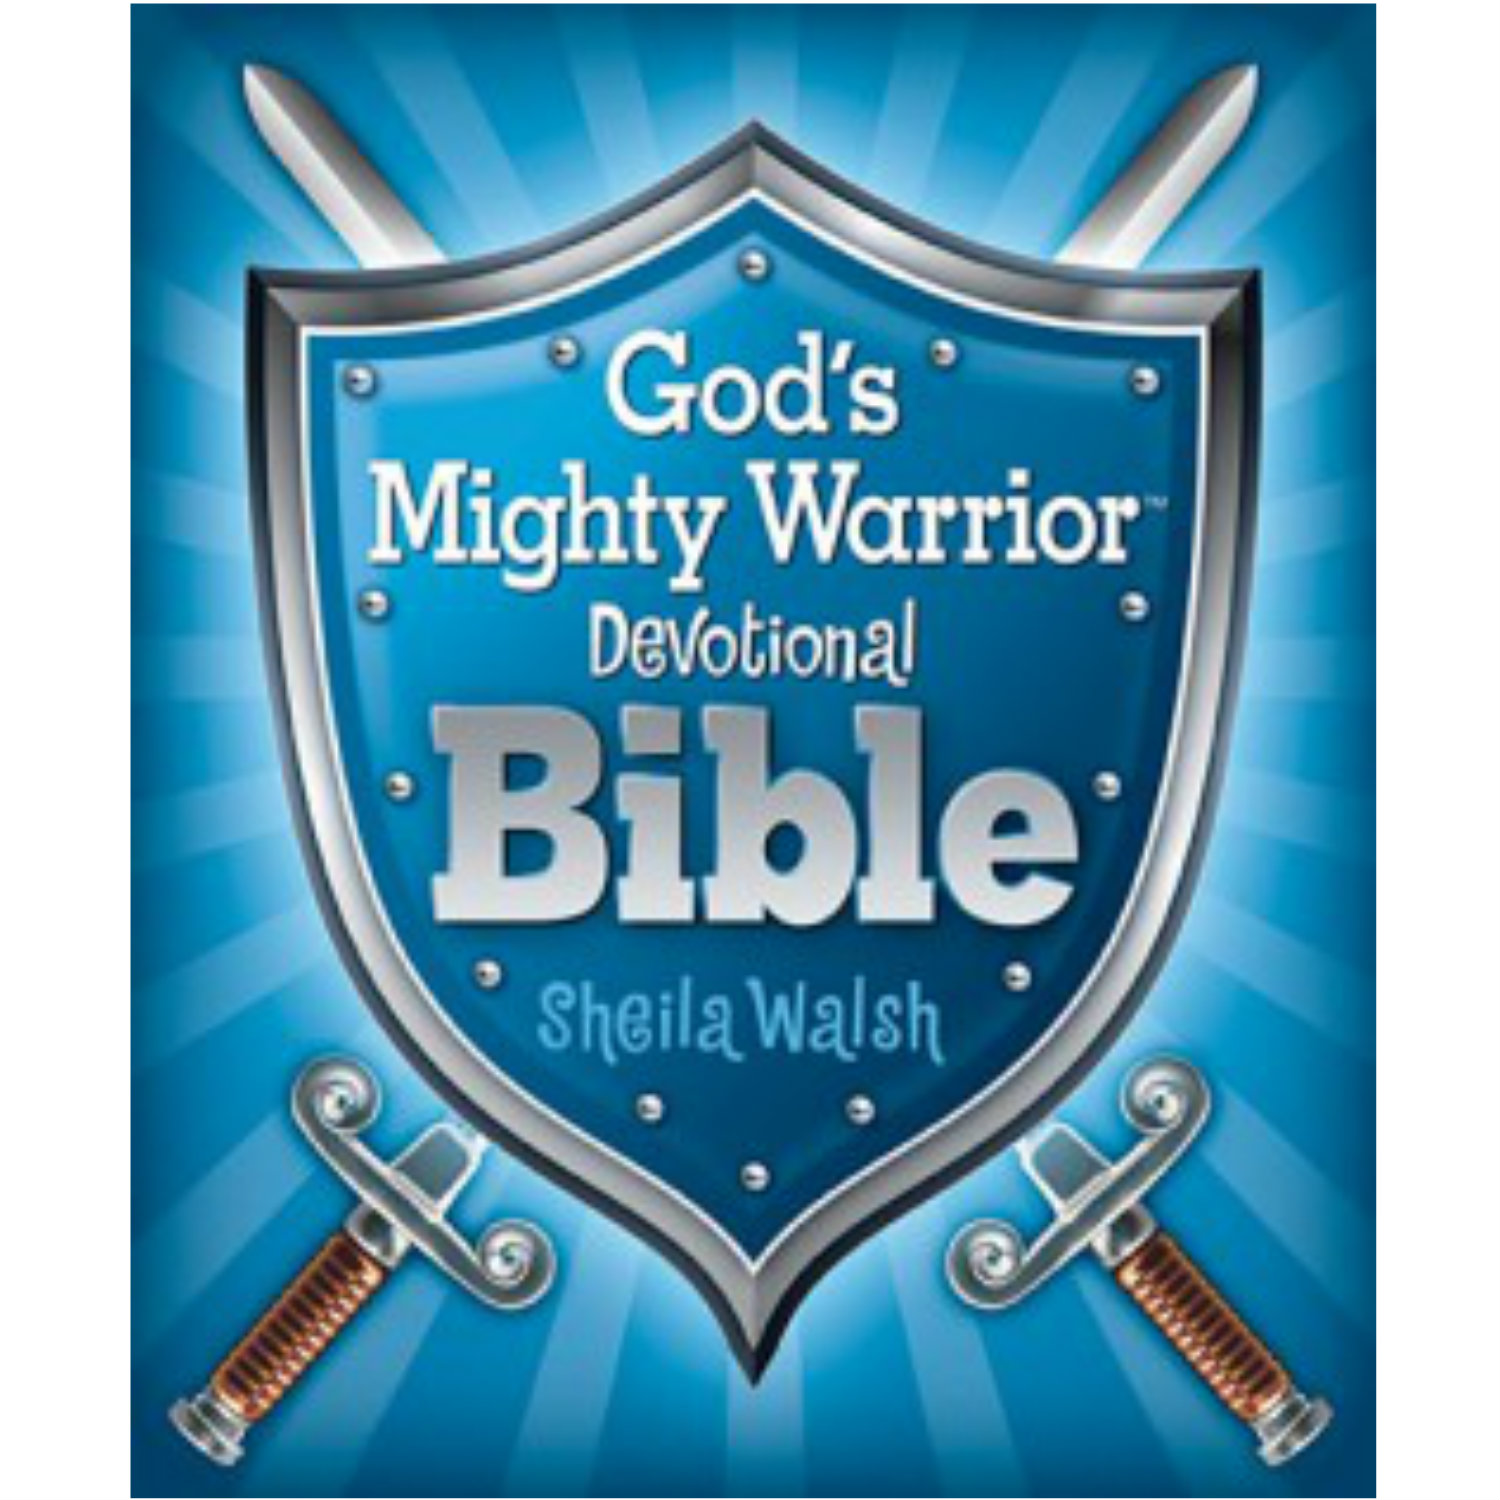 God's Mighty Warrior® Devotional Bible {Winner Announced}